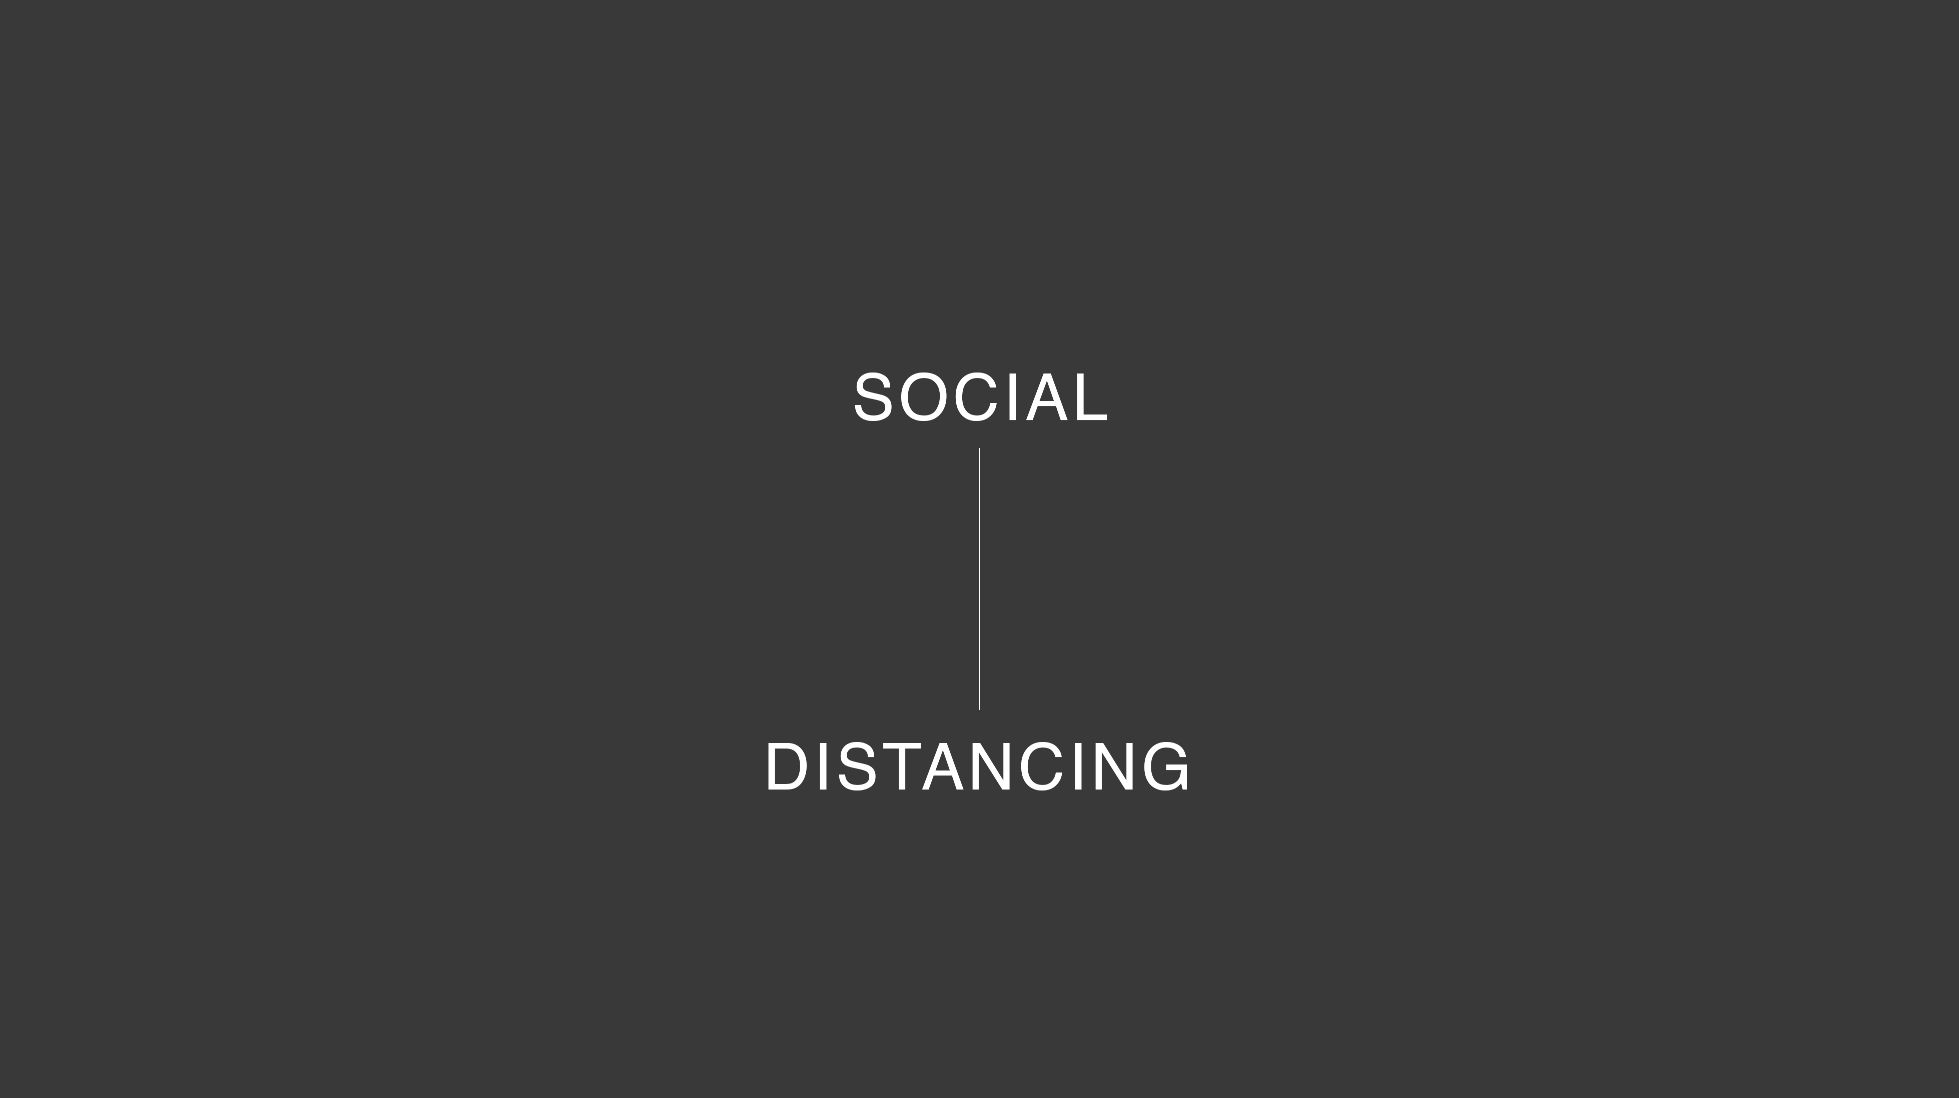 Resources to Get Through Social Distancing